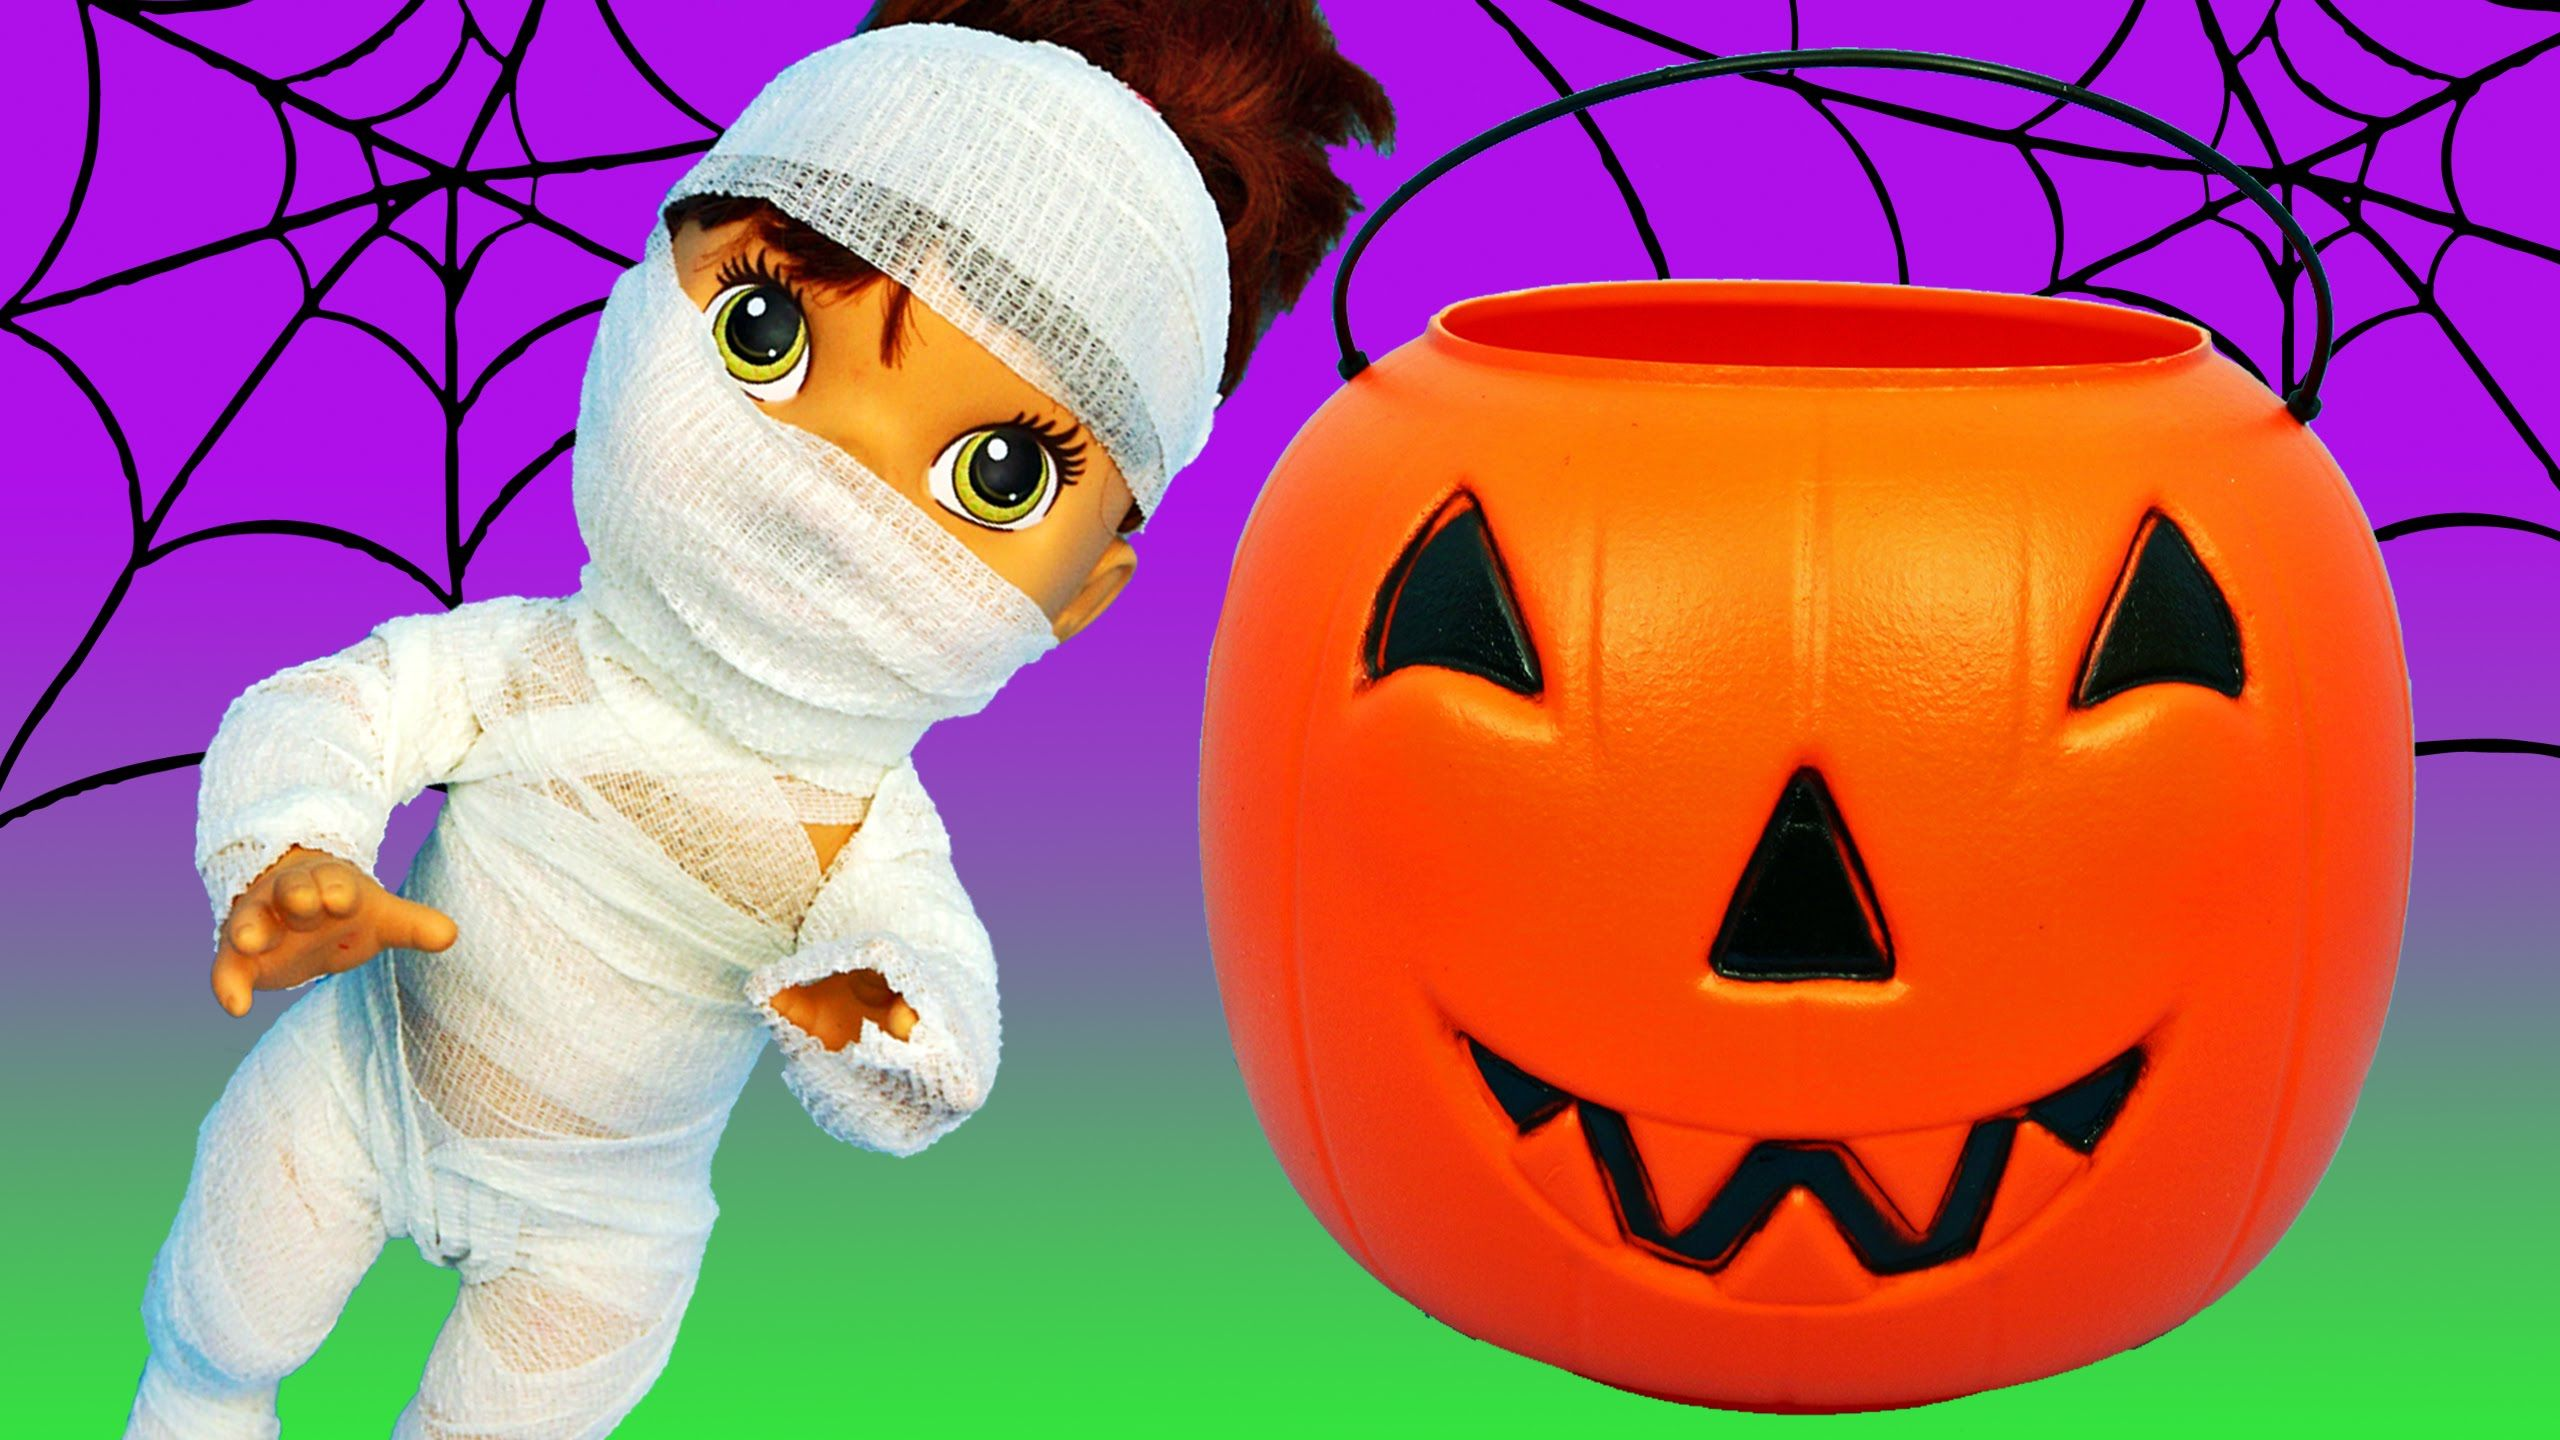 baby alive lucy gets mummy halloween costume surprise toys trick or